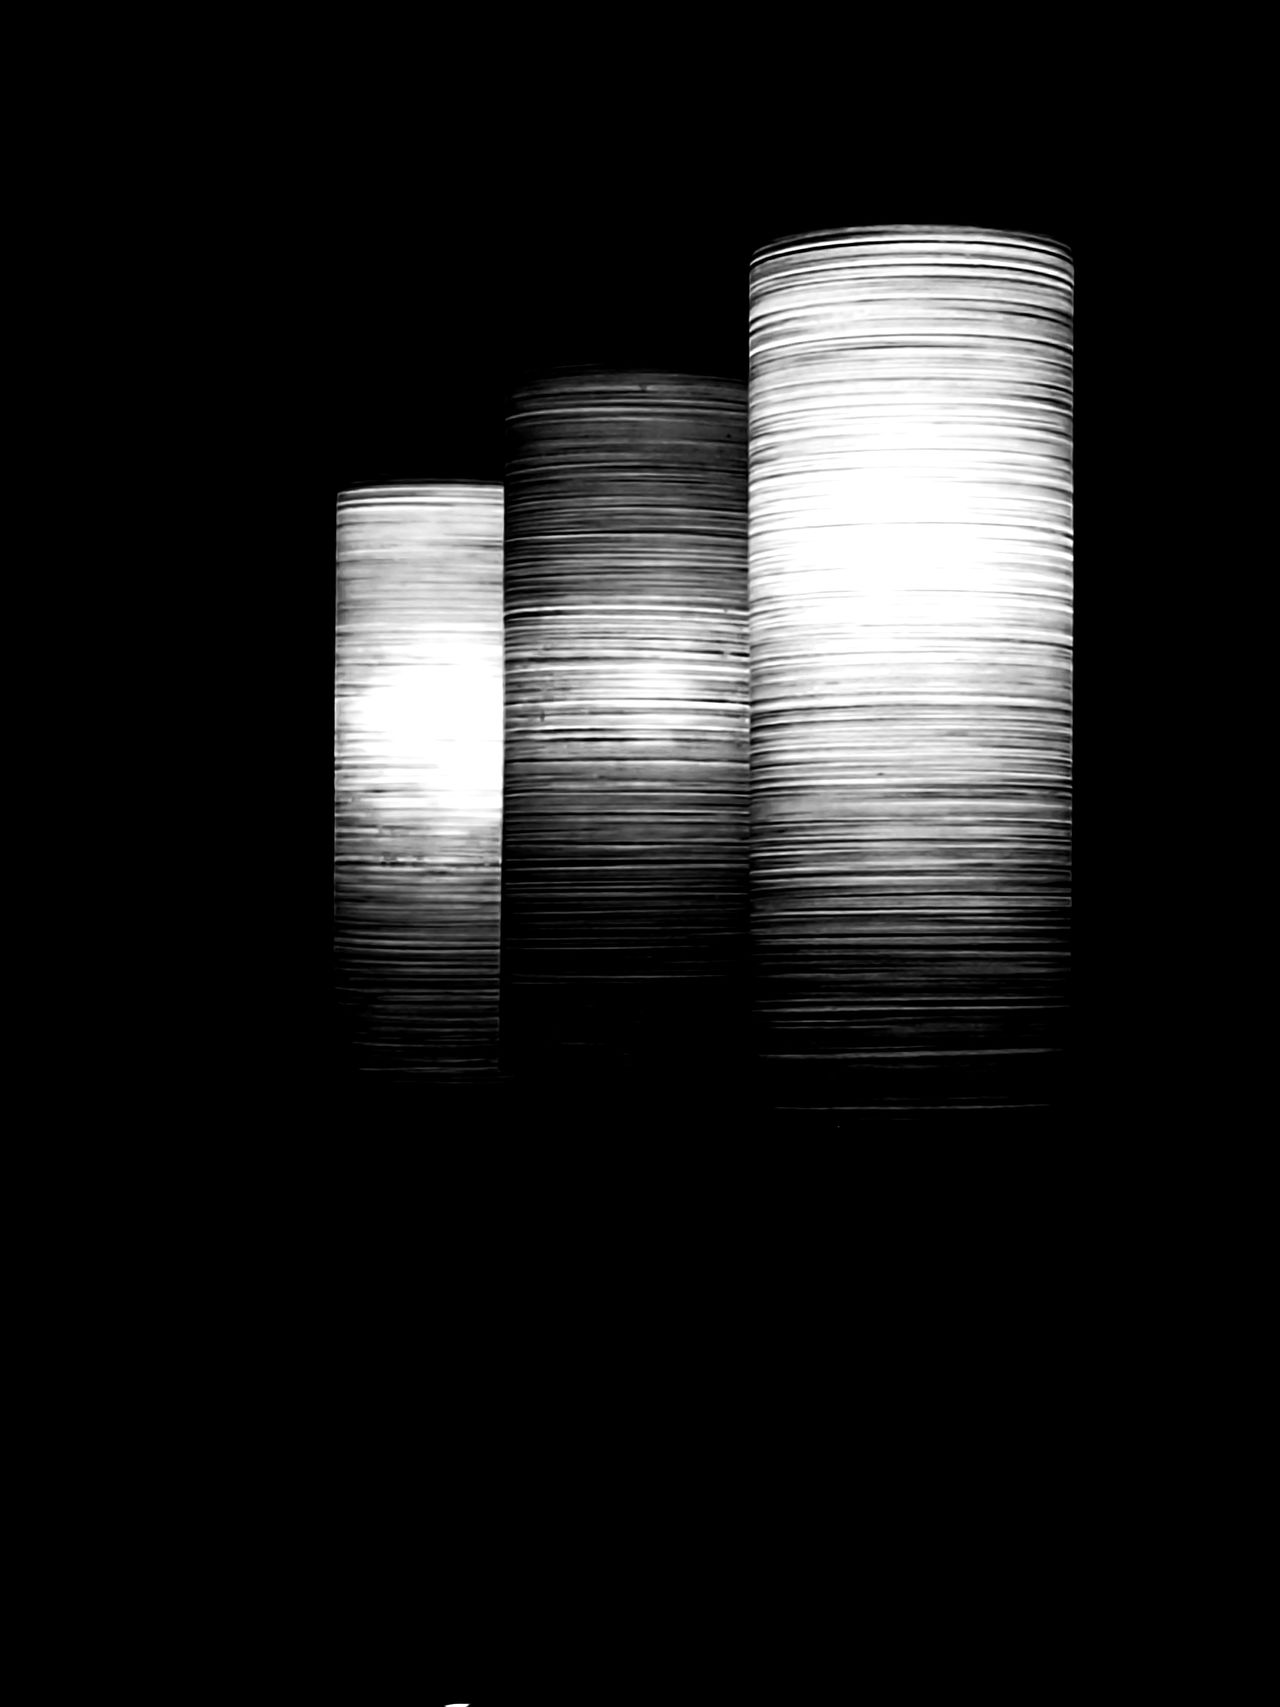 Captured Something Elegant WhenBoredomStrikes Eyeemphotography Blackandwhite Photography Playing With Huawei P9 Camera HuaweiP9Photography Indoors  Ceiling Lights No People Dining Light Lamp Light Black Background Blackandwhitephoto Night EyeEmNewHere Uniqueness Welcome To Black The Architect - 2017 EyeEm Awards